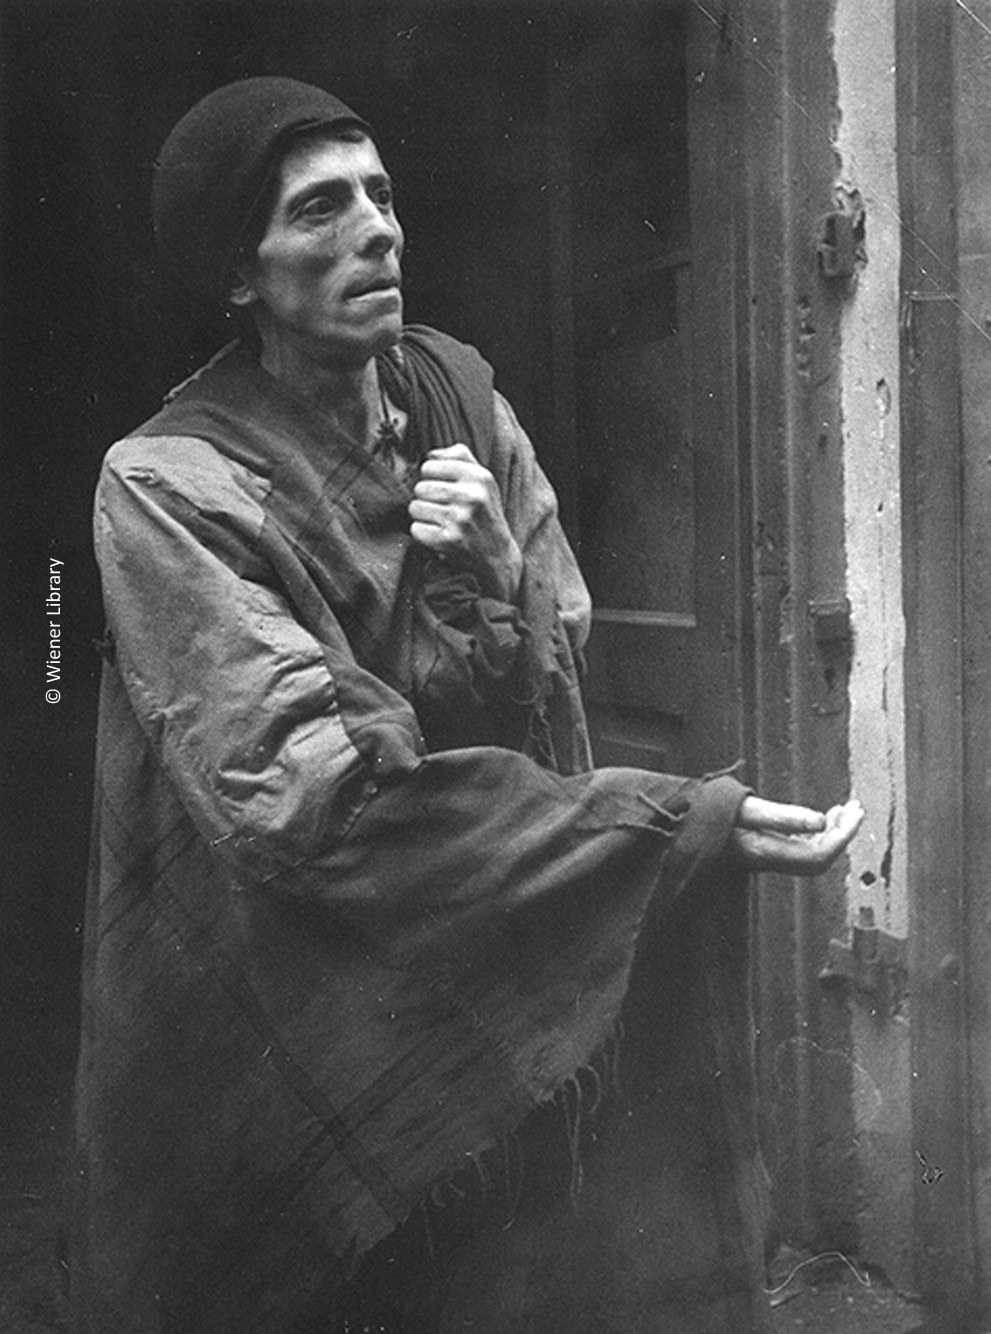 Man begging in the Warsaw Ghetto, 1941